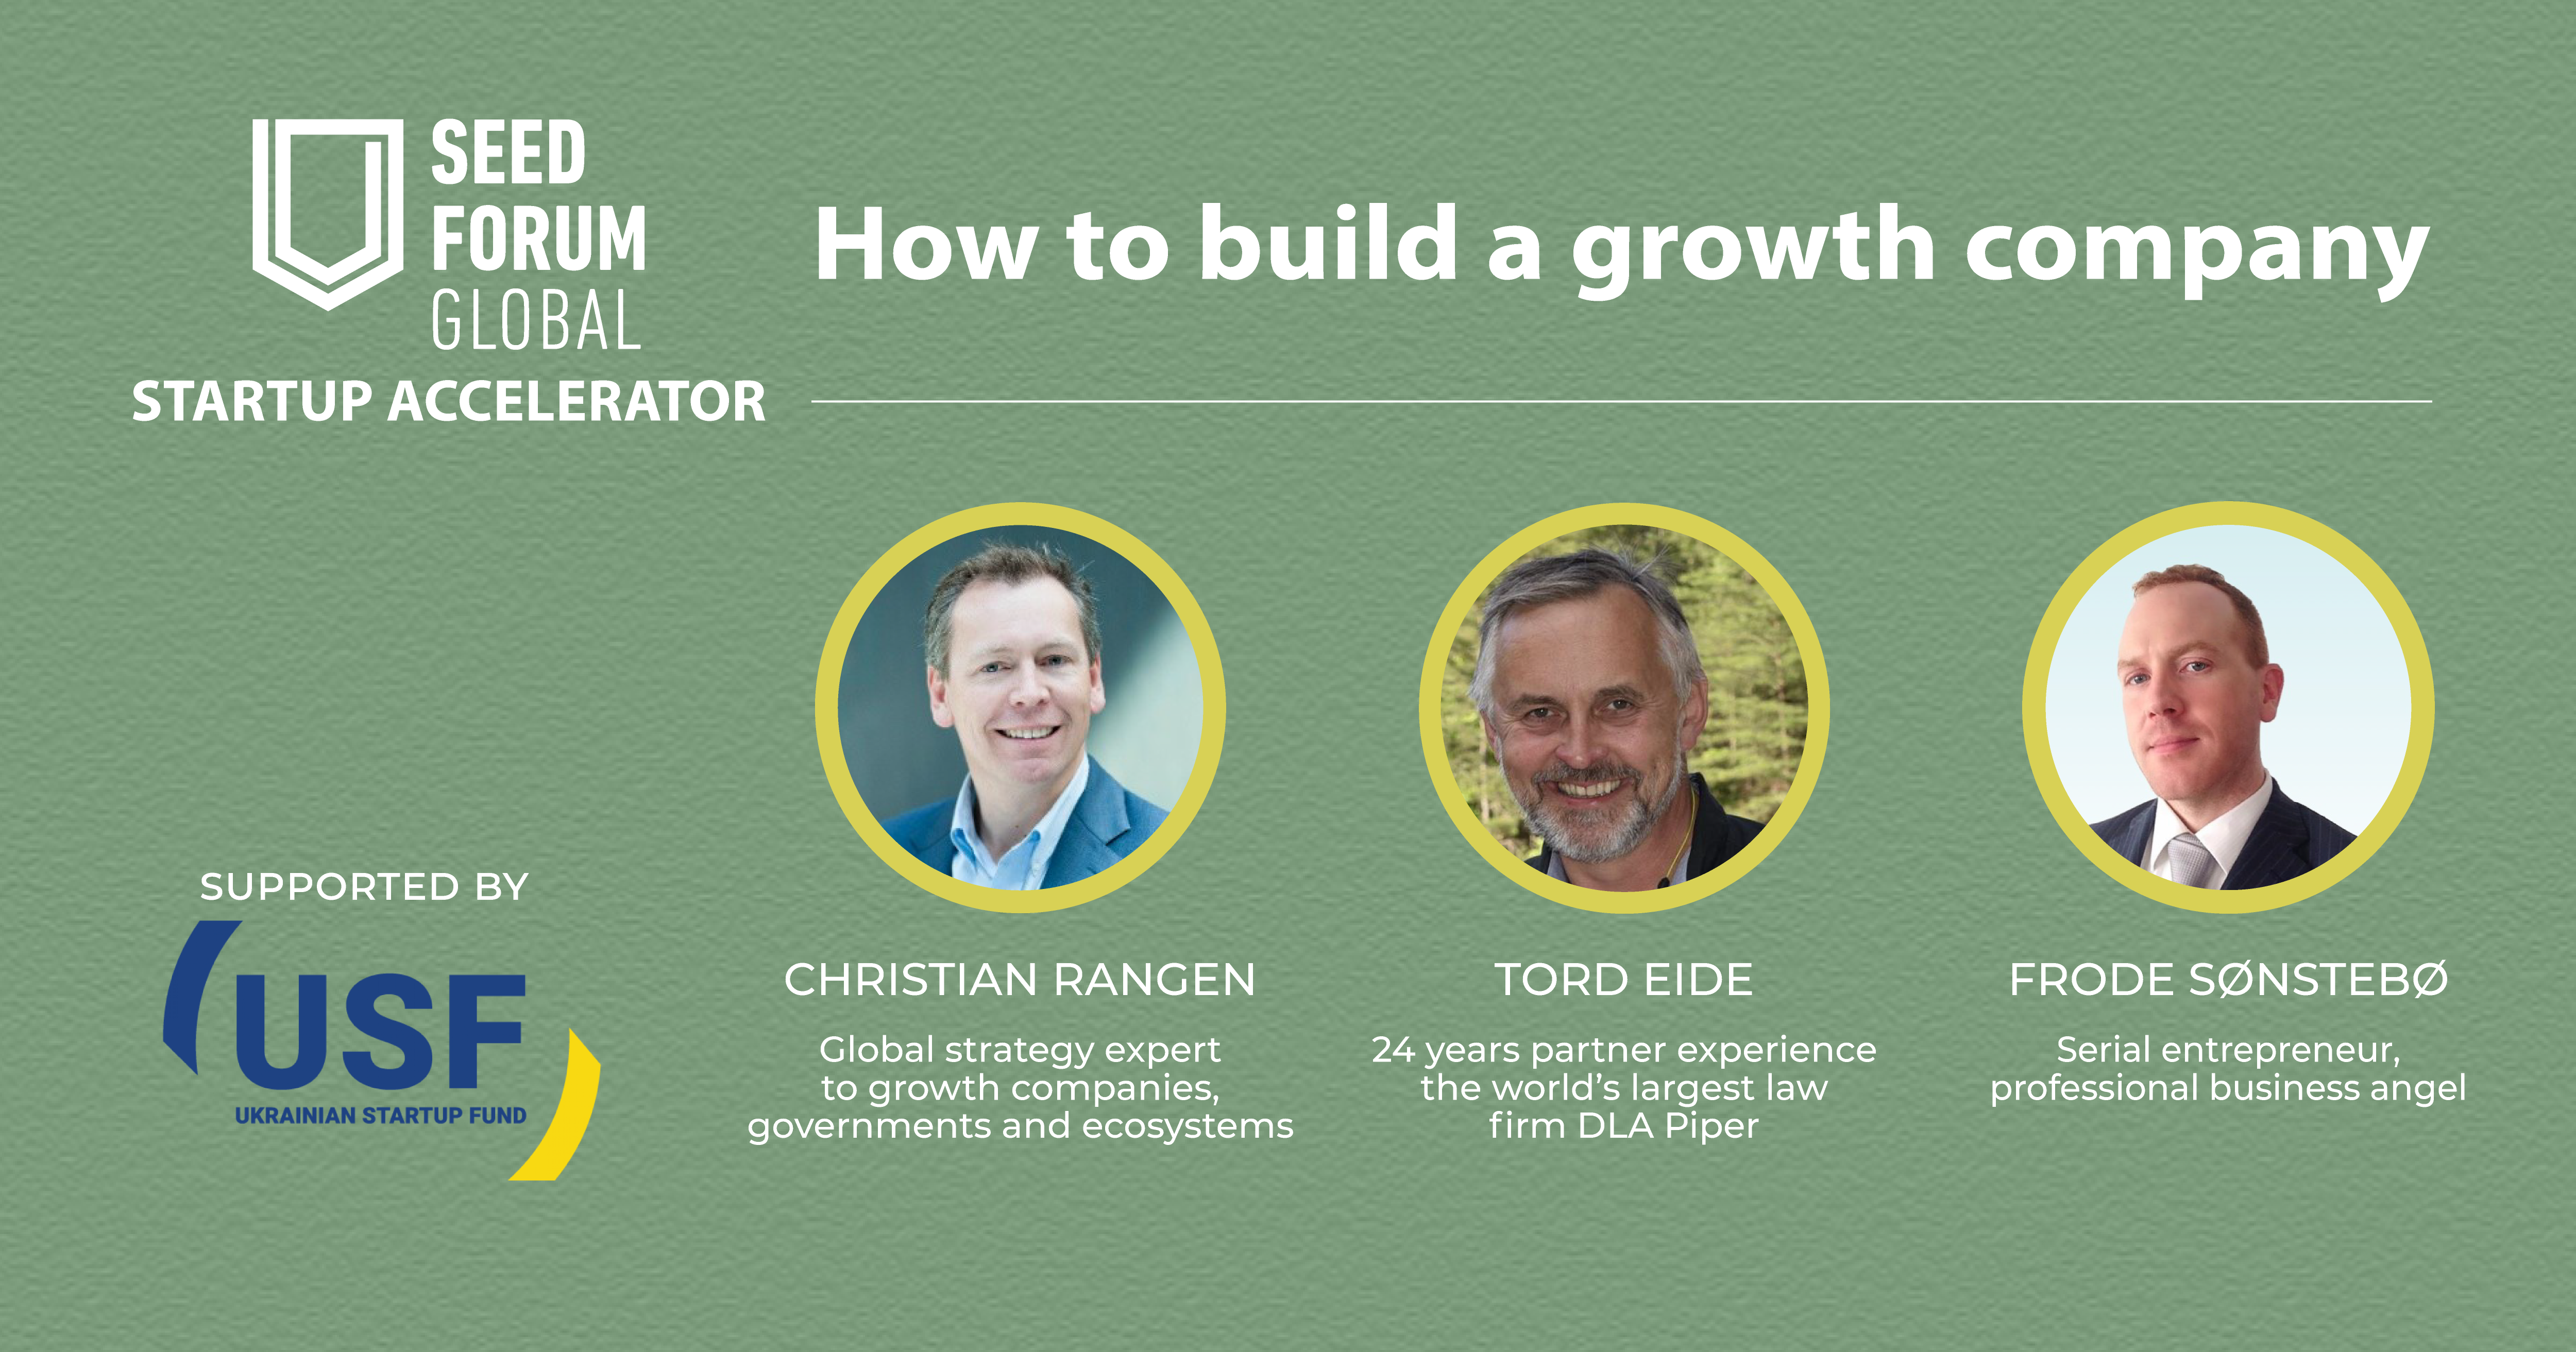 How to build a growth company?